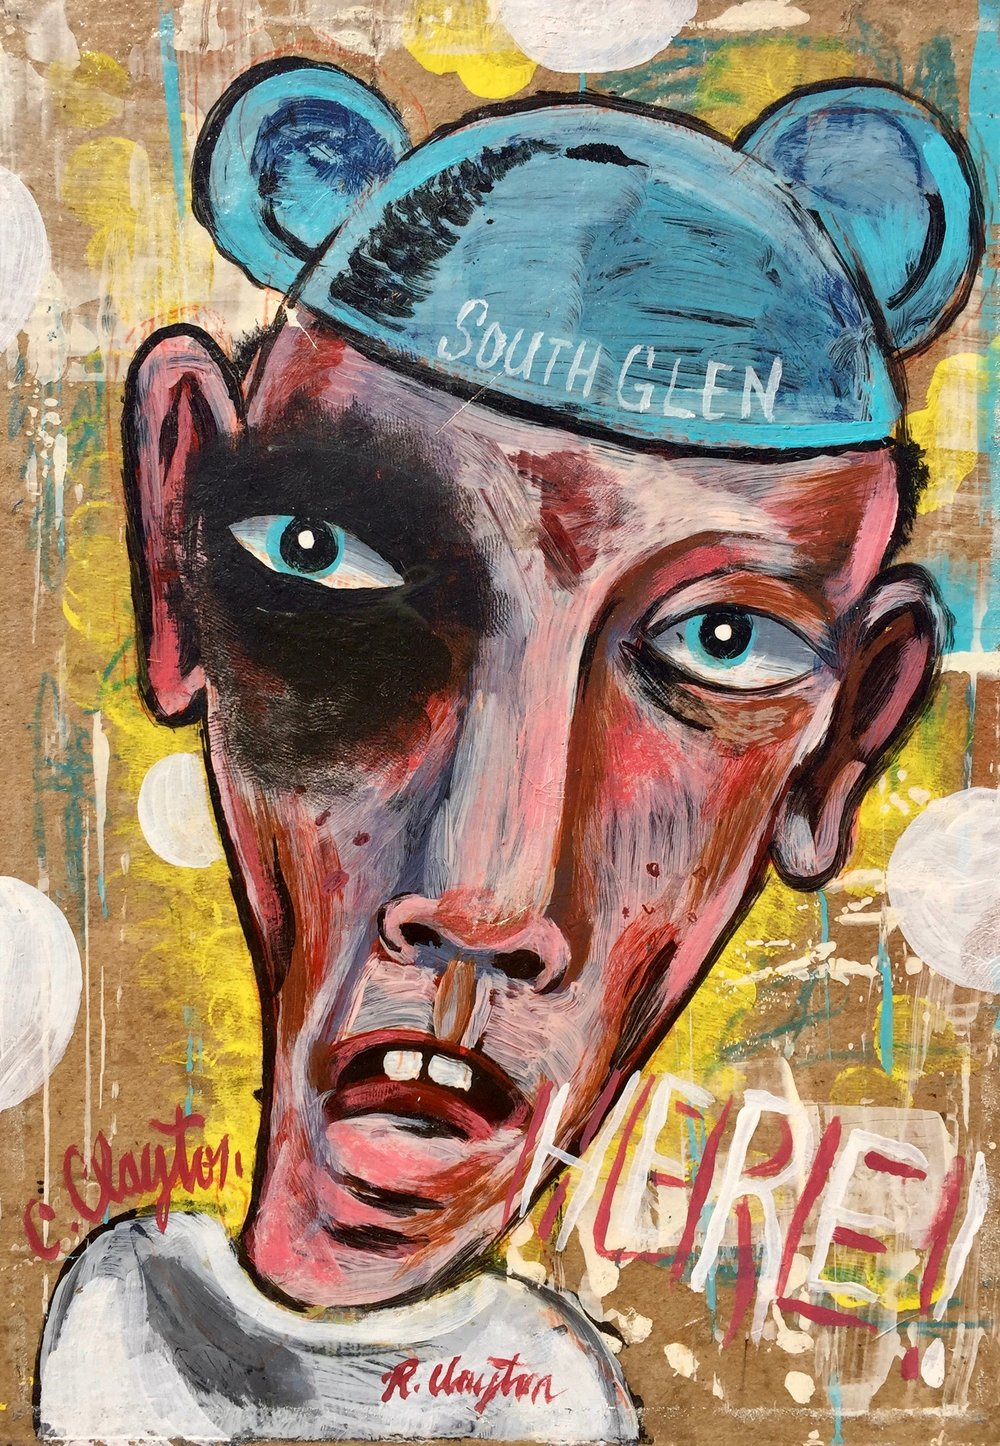 South Glen    Mixed media on wood panel  2002  5 x 7 In  $1,200.00